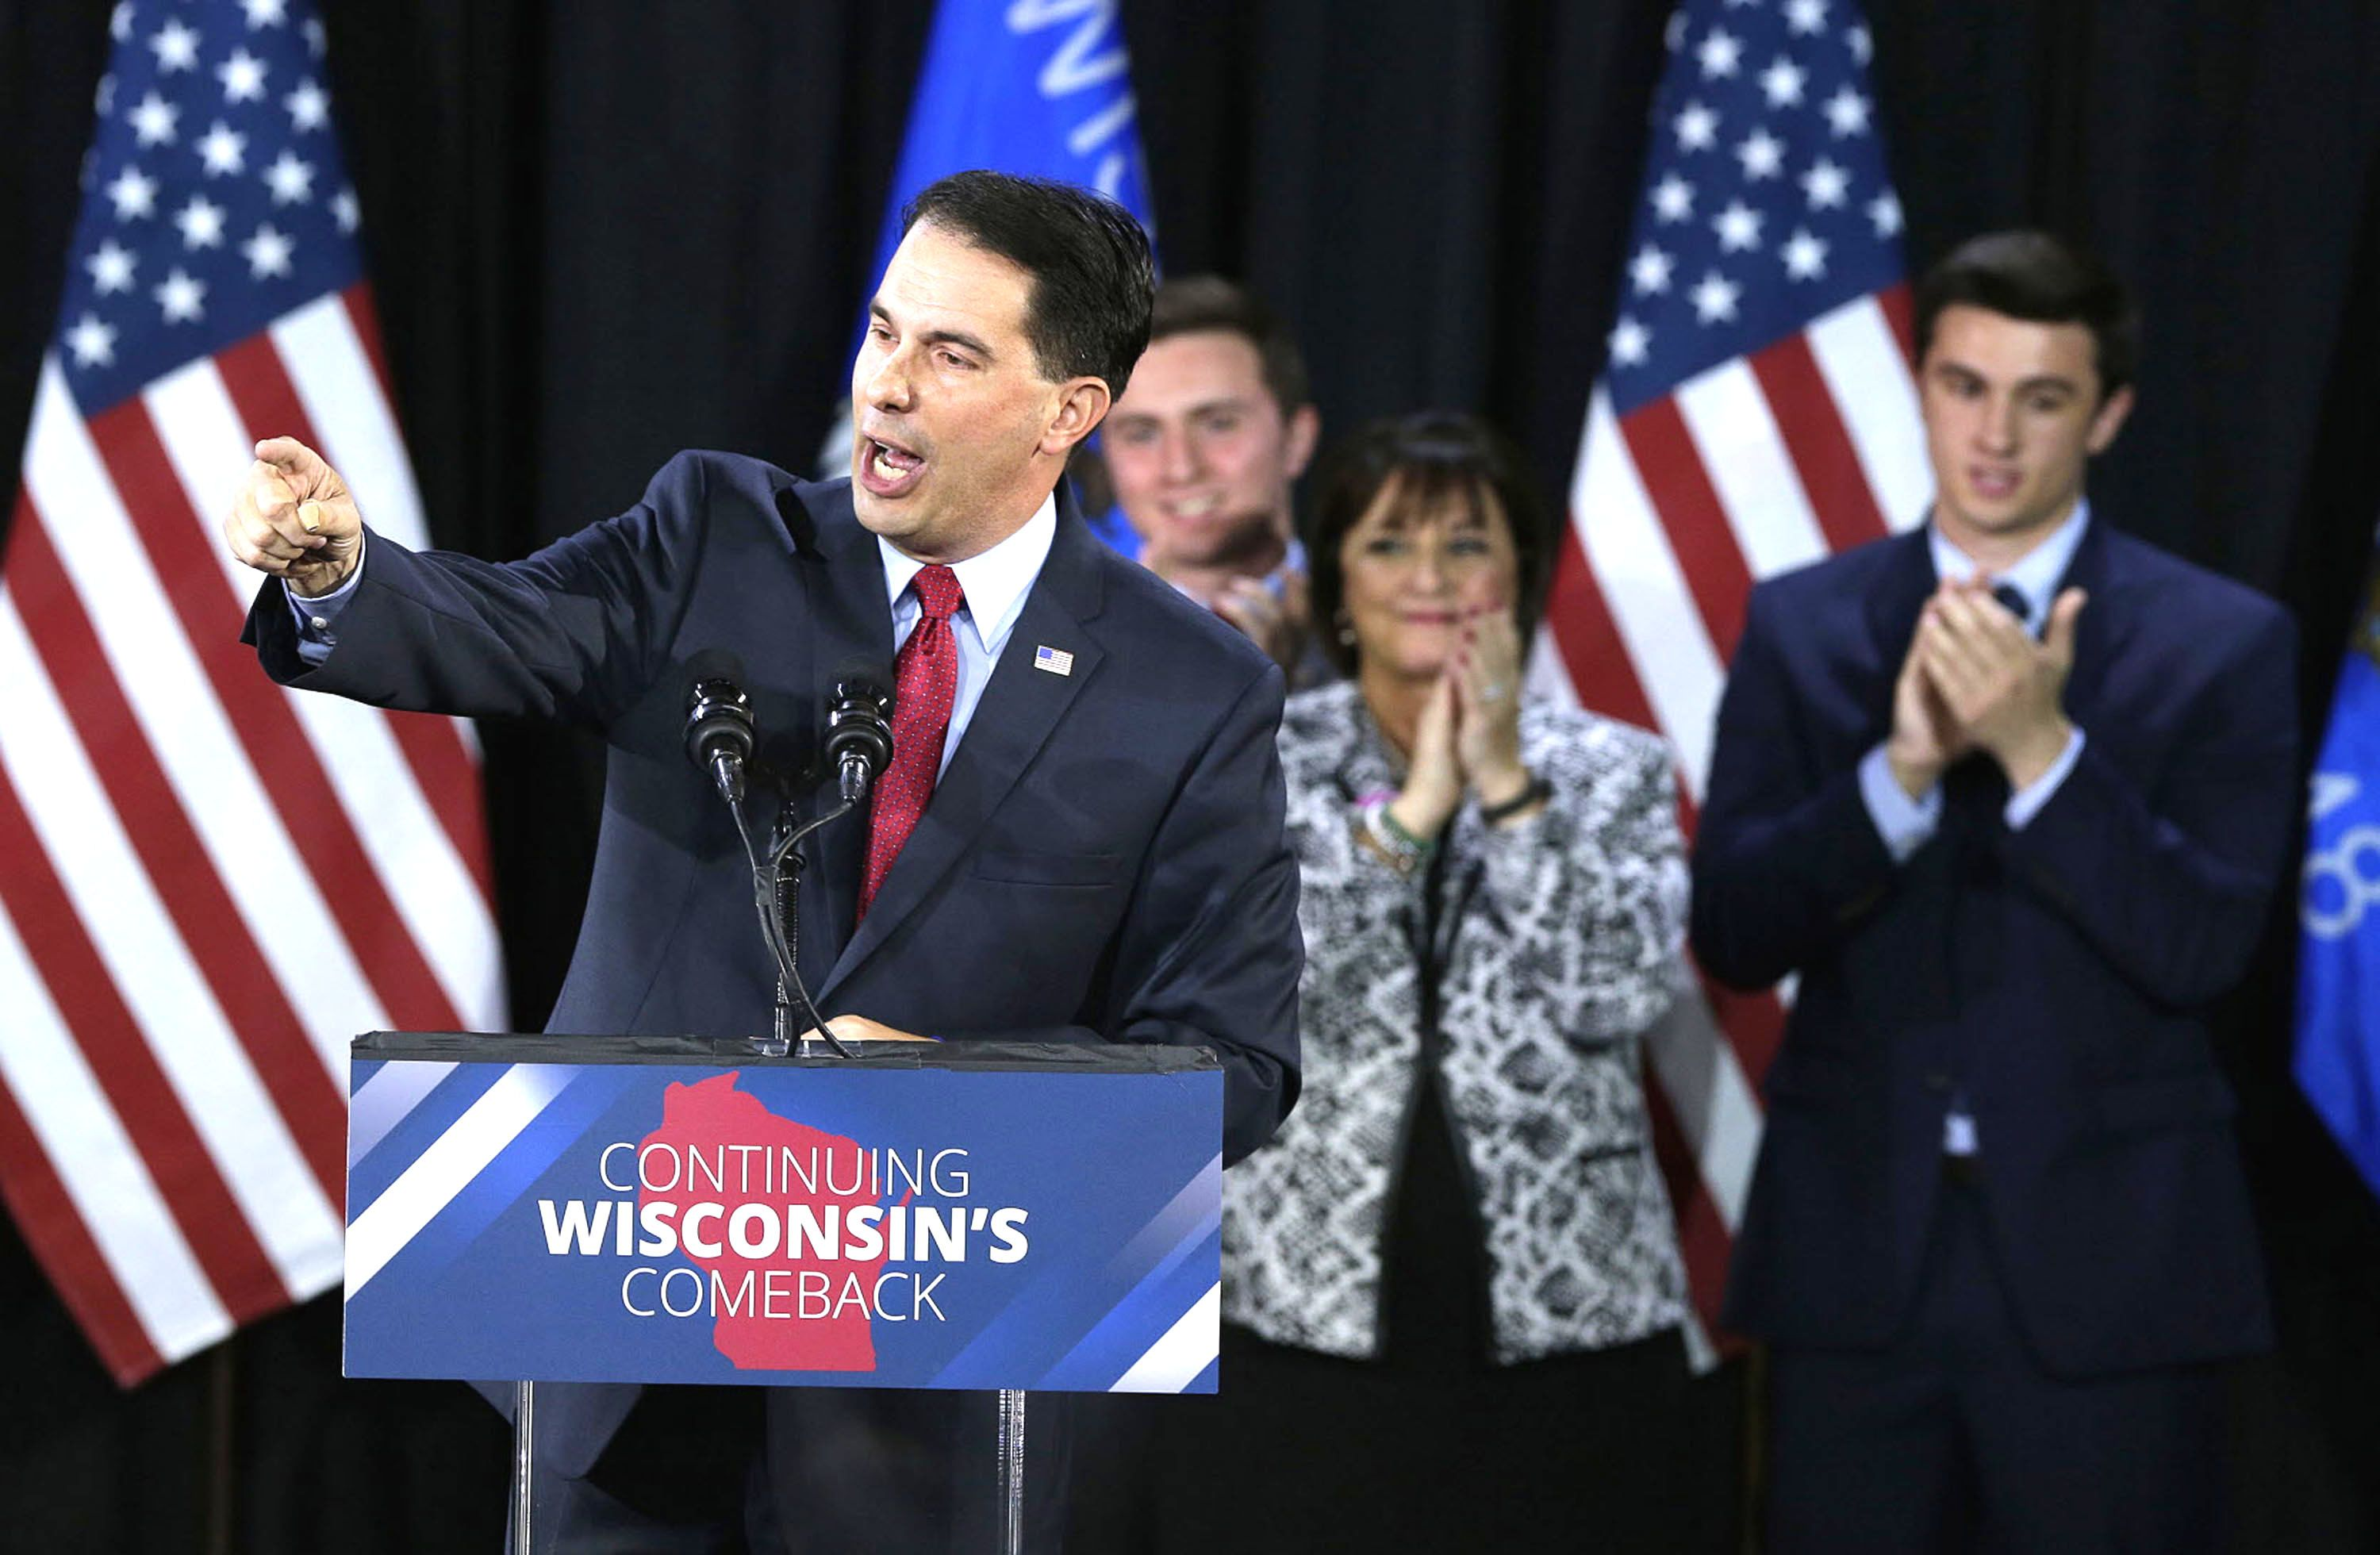 Wisconsin Republican Gov. Scott Walker thanks supporters after his reelection as governor.